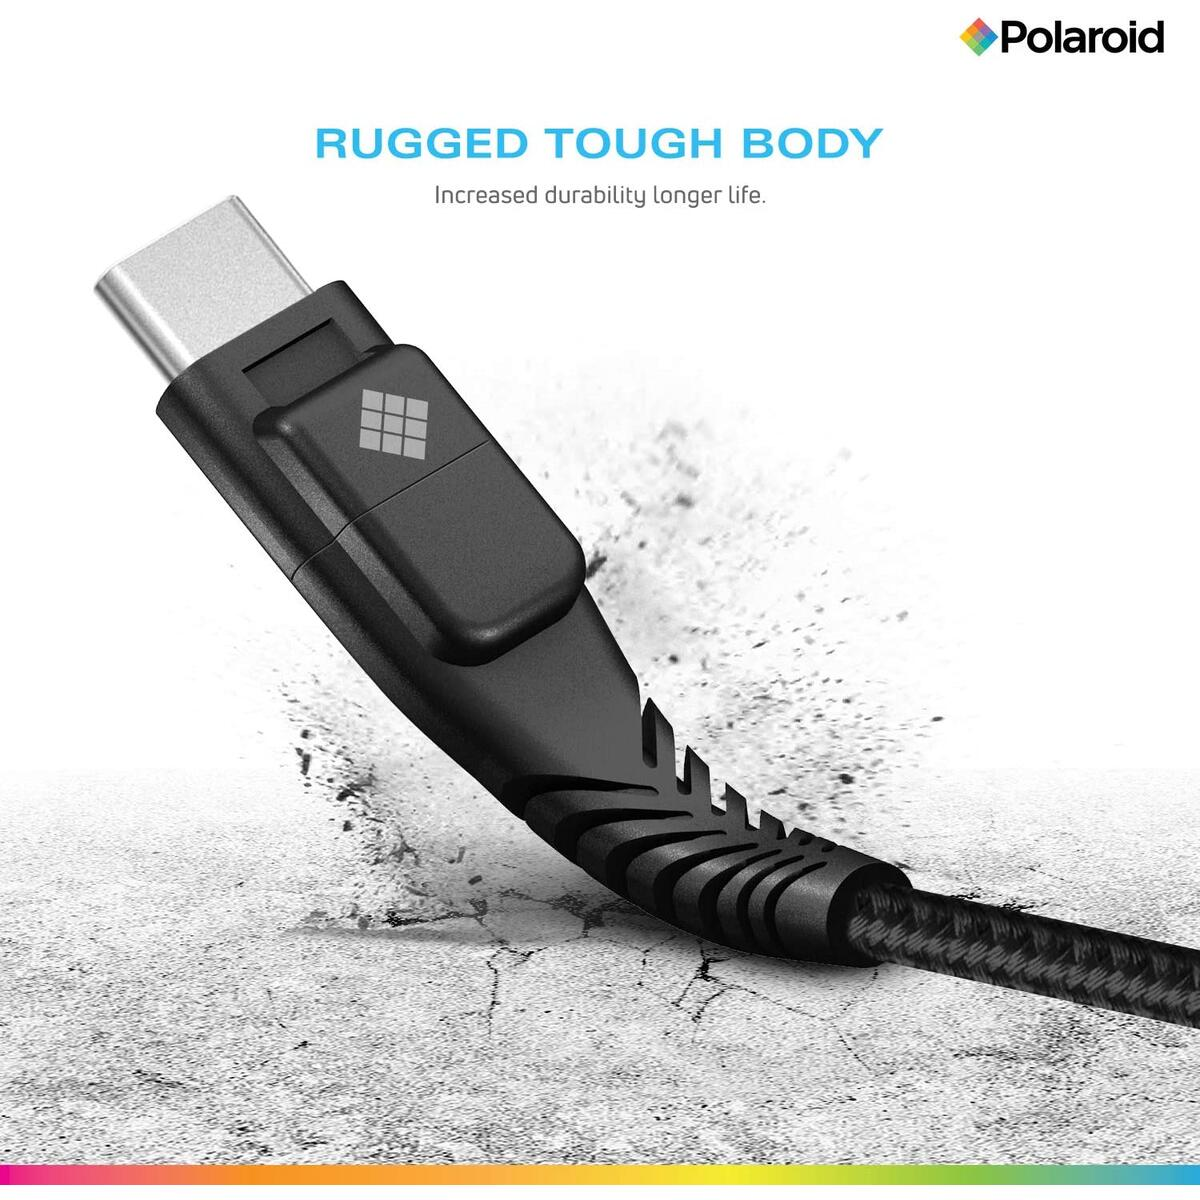 Polaroid 5ft USB Type-C Cable, with LED Light, Braided Premium Spun Nylon Charger Cable